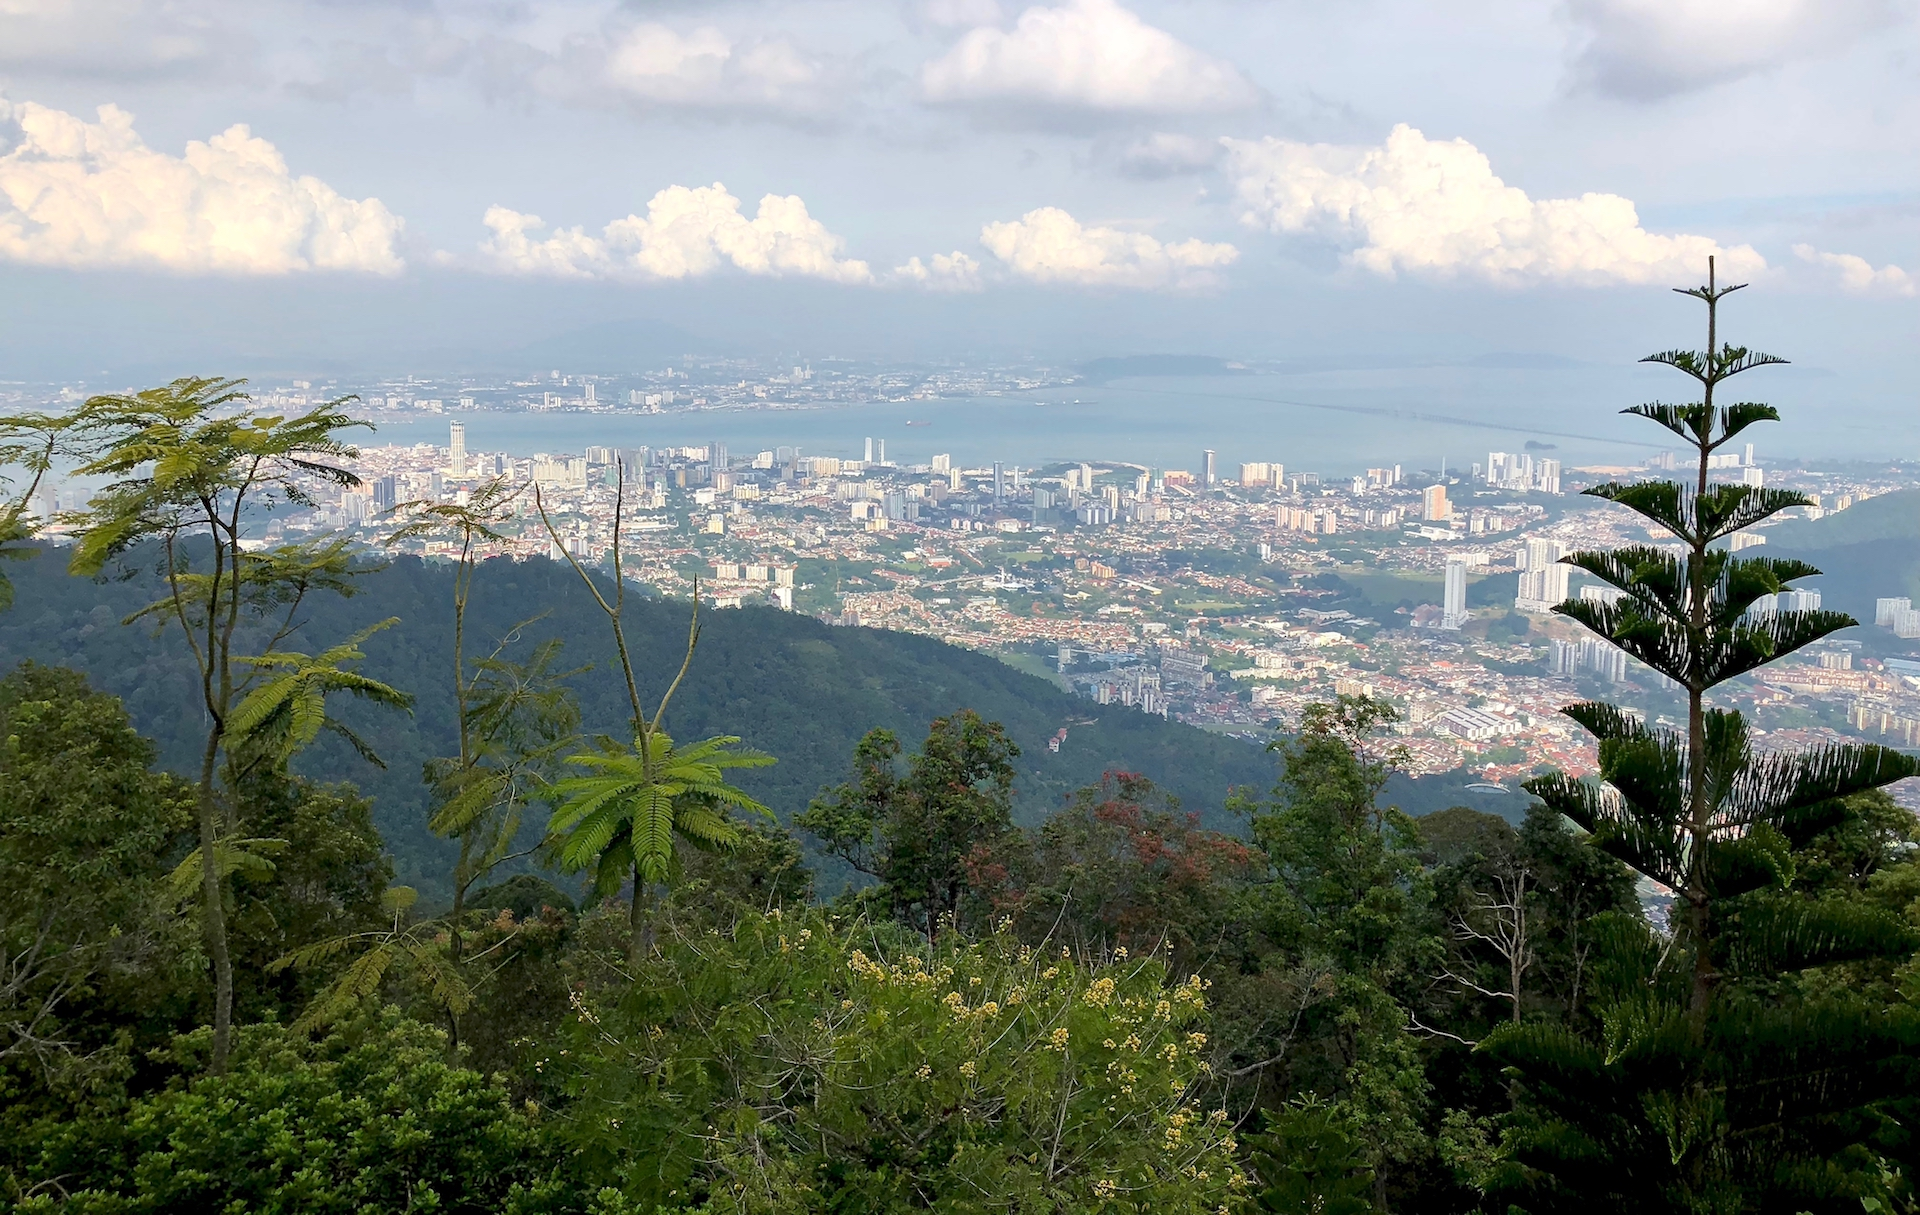 The view of George Town from Penang Hill. Photo © Szilvia Molnár